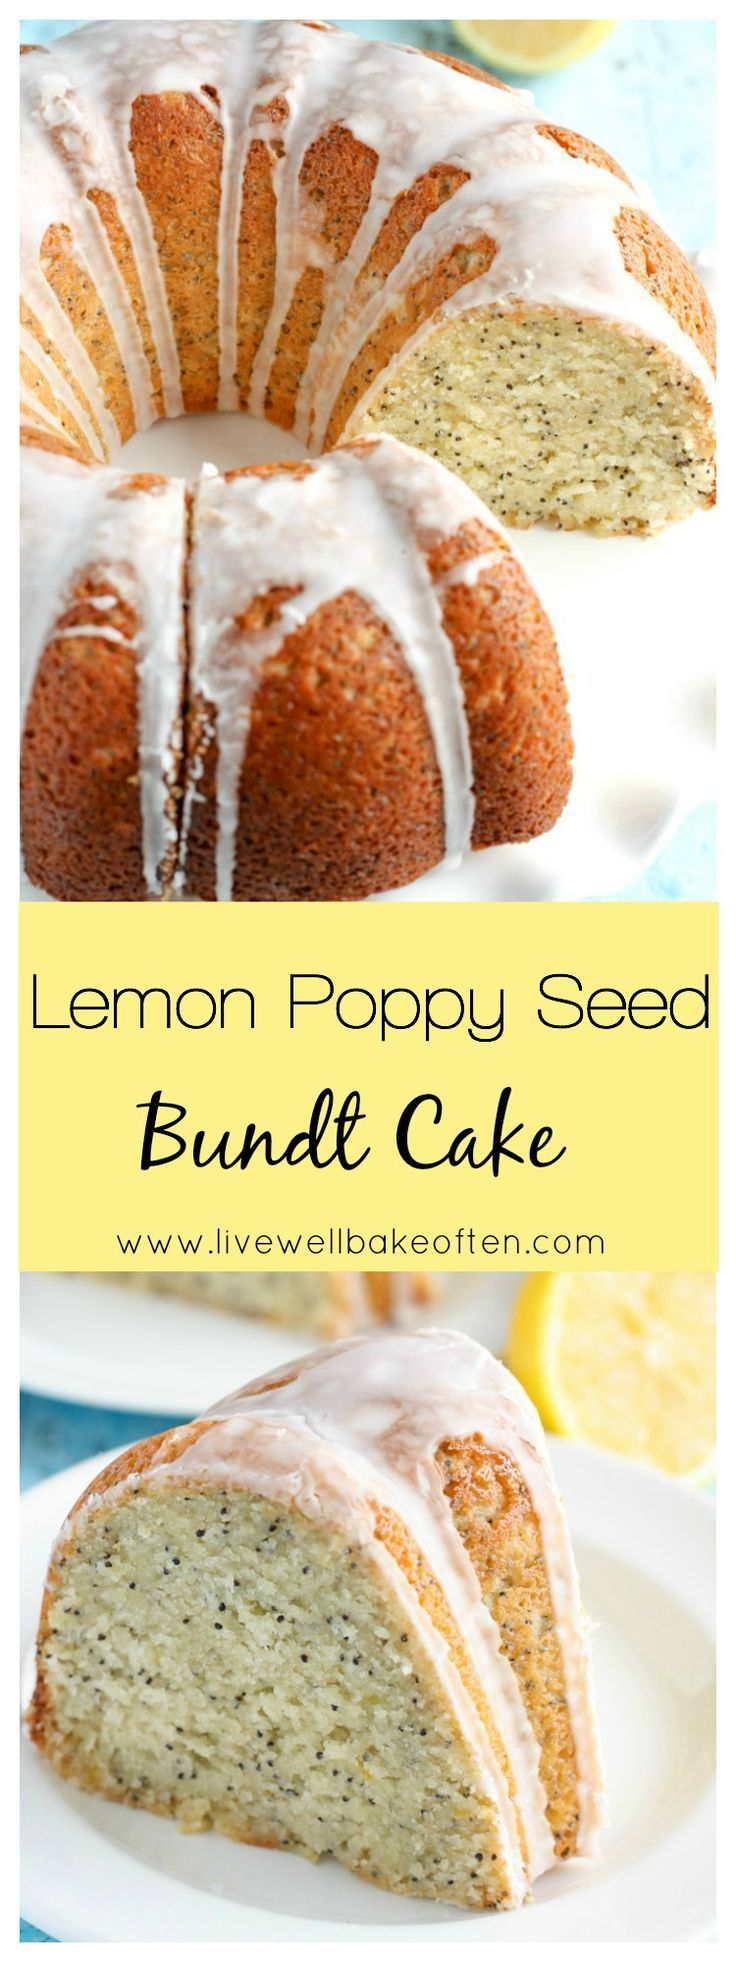 This Lemon Poppy Seed Bundt Cake is moist, perfectly sweet, and lemony!